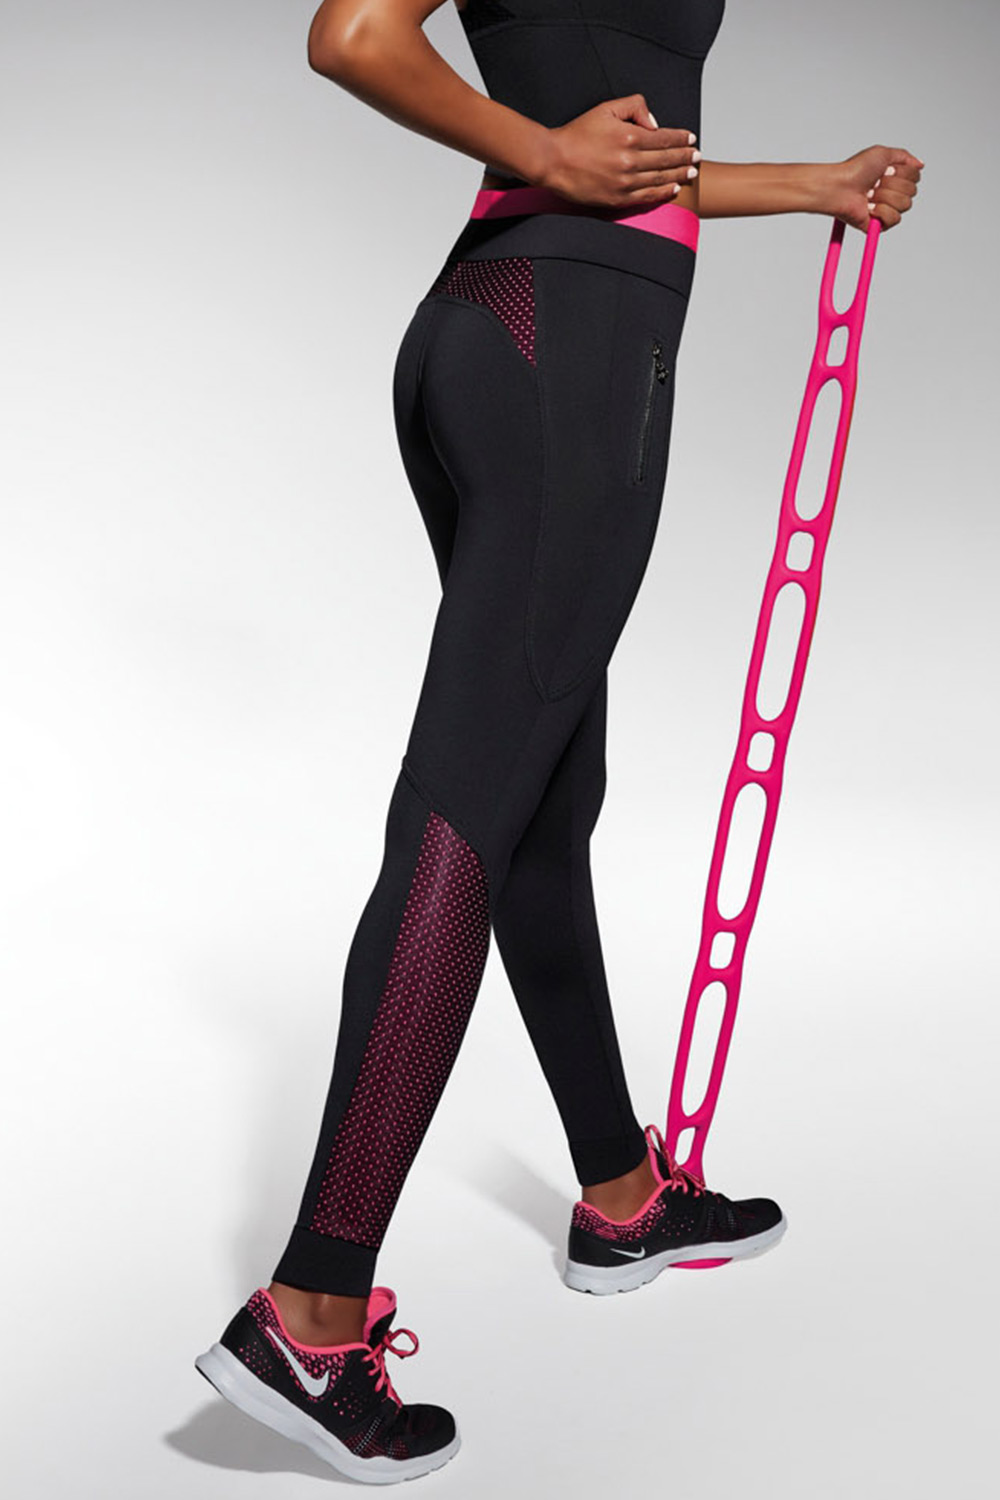 Inspire sport leggings